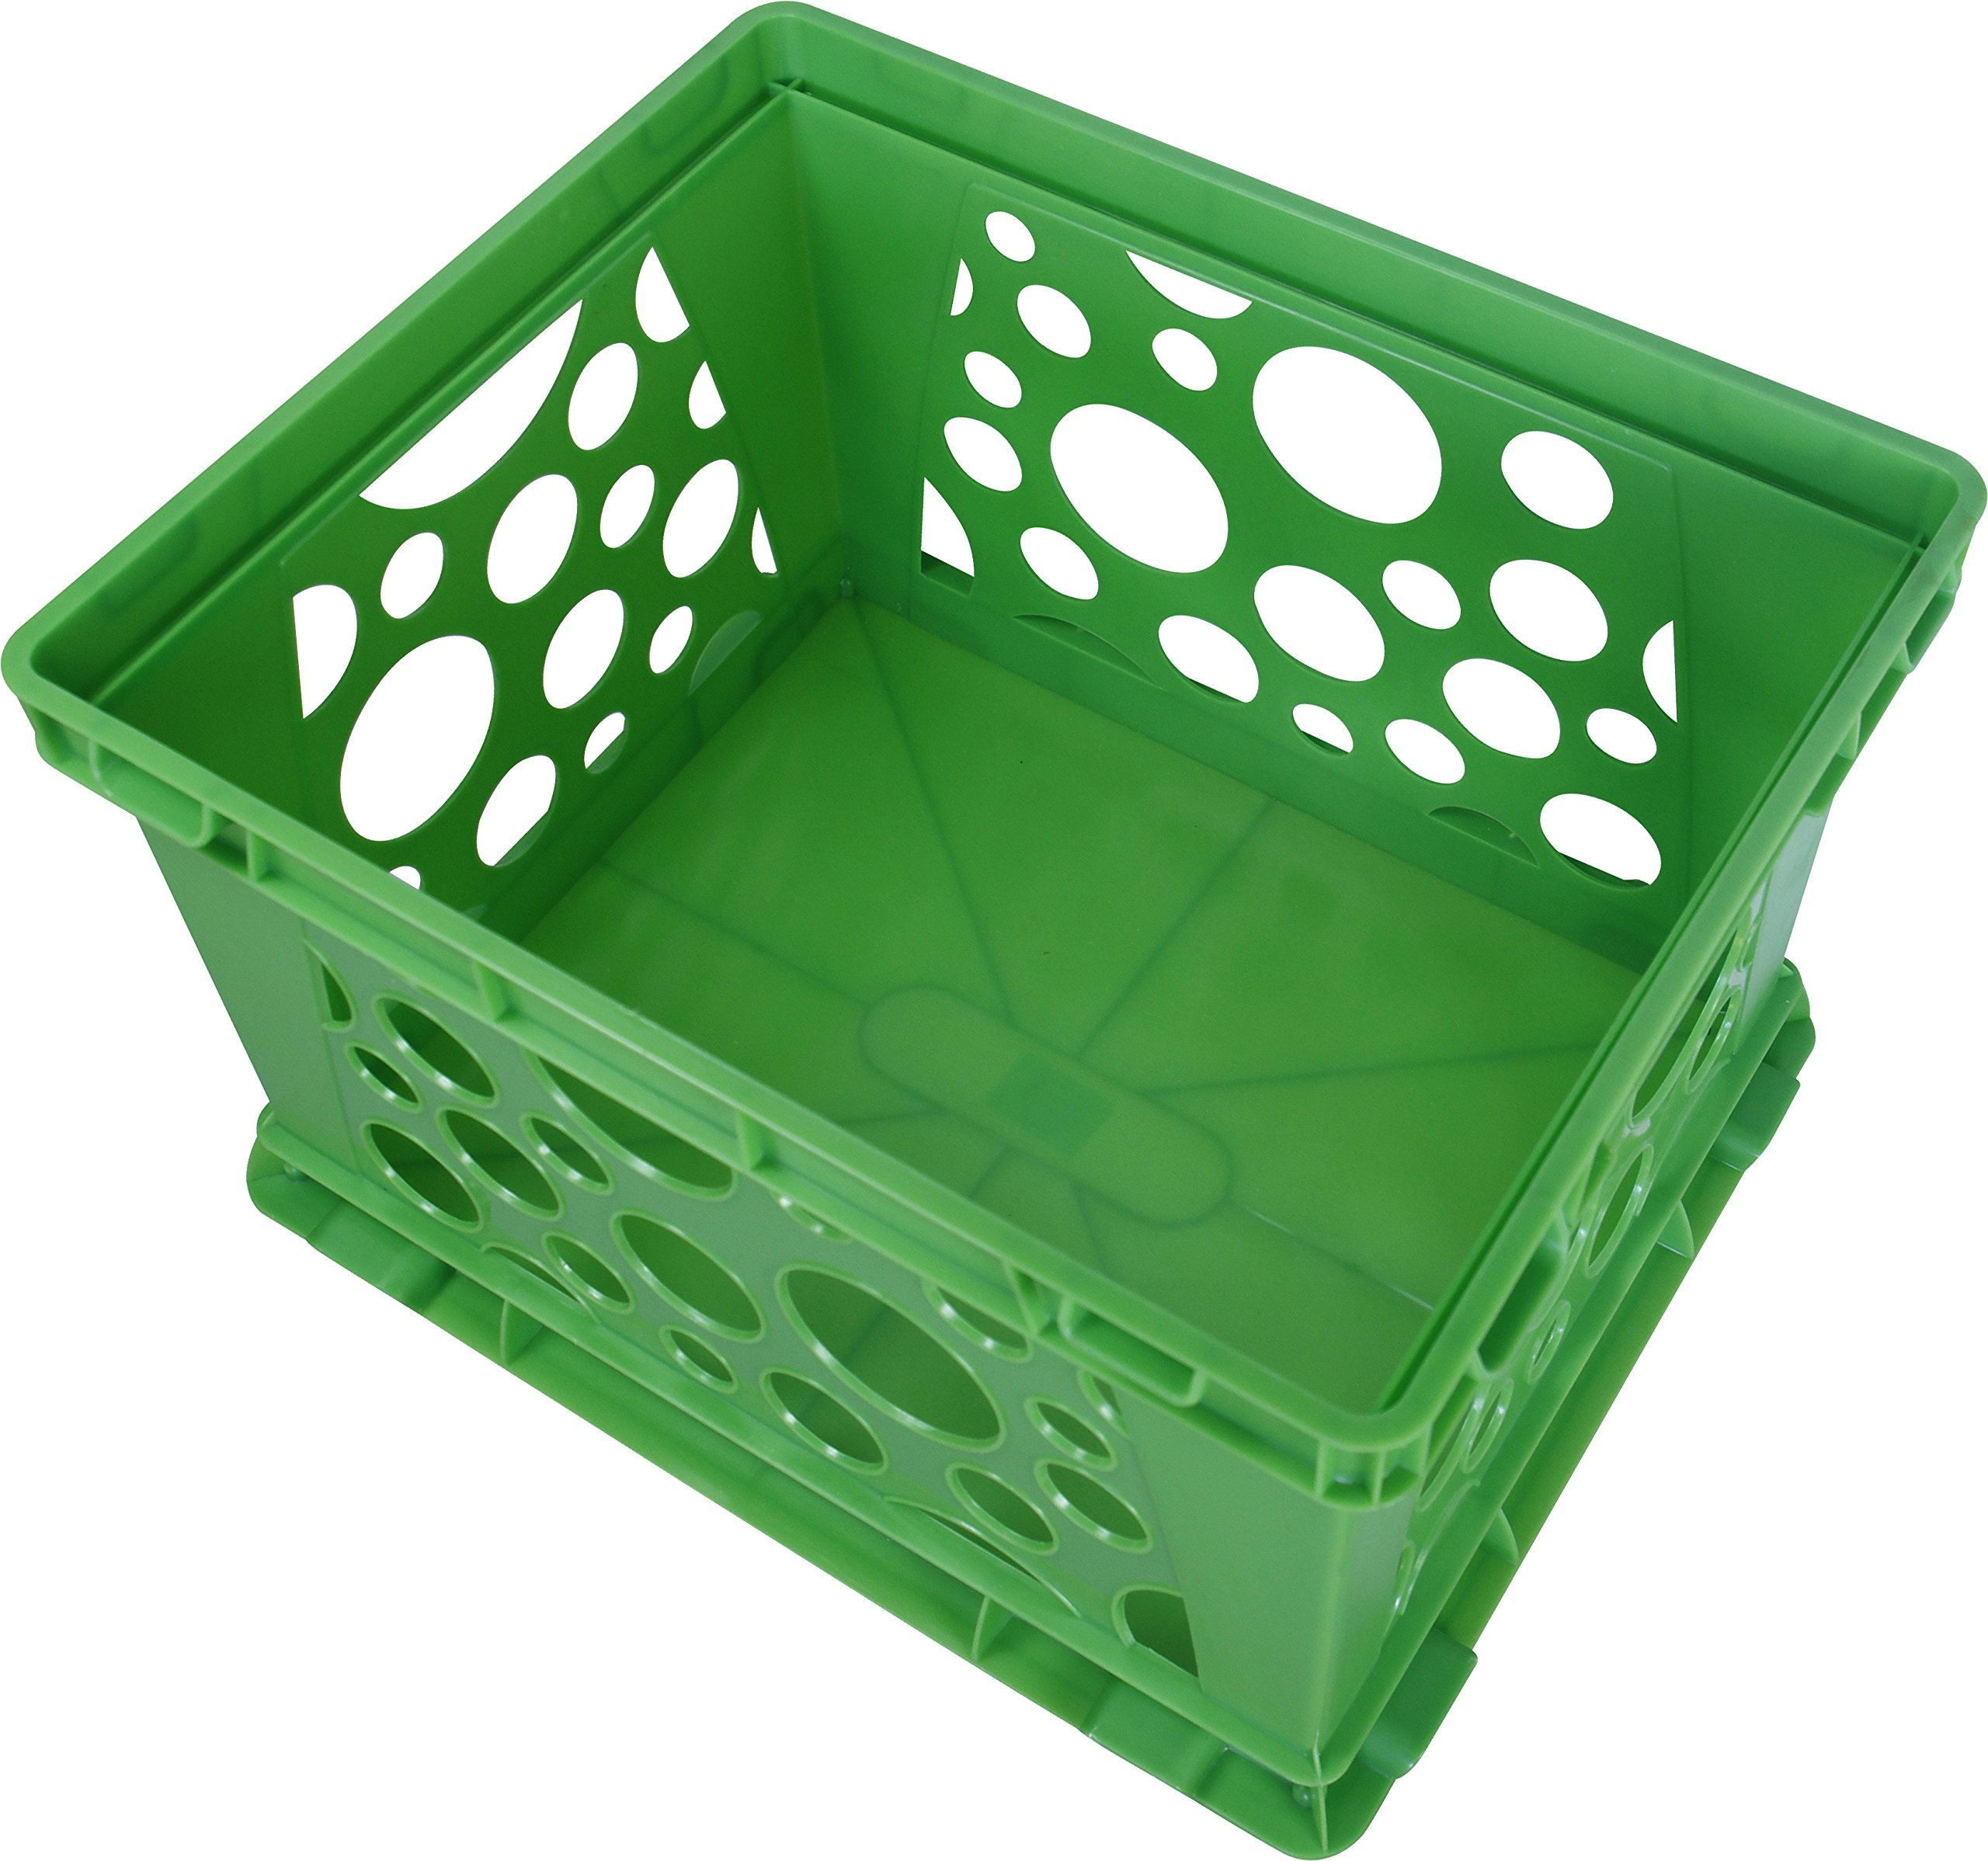 Storex Large Storage and Transport File Crate, 17.25 x 14.25 x 10.5 Inches, Green, Case of 3 (STX61556U03C) by Storex (Image #4)